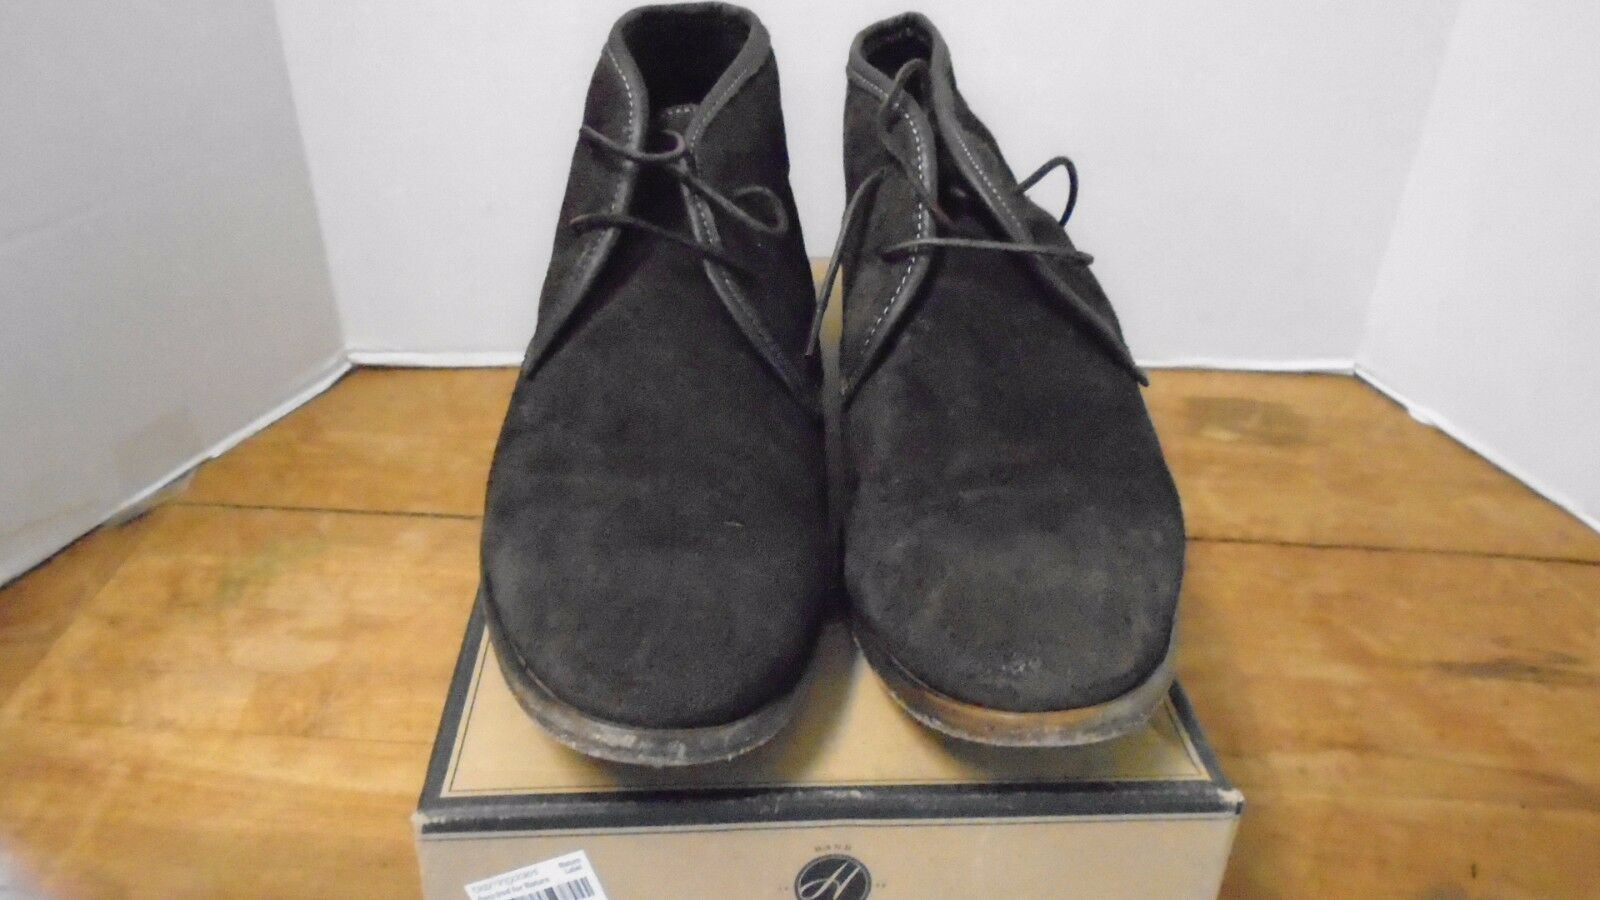 Hudson Fleet Men's Shoes Cruise Chocolate Brown 13 Suede Leather Portugal Boots